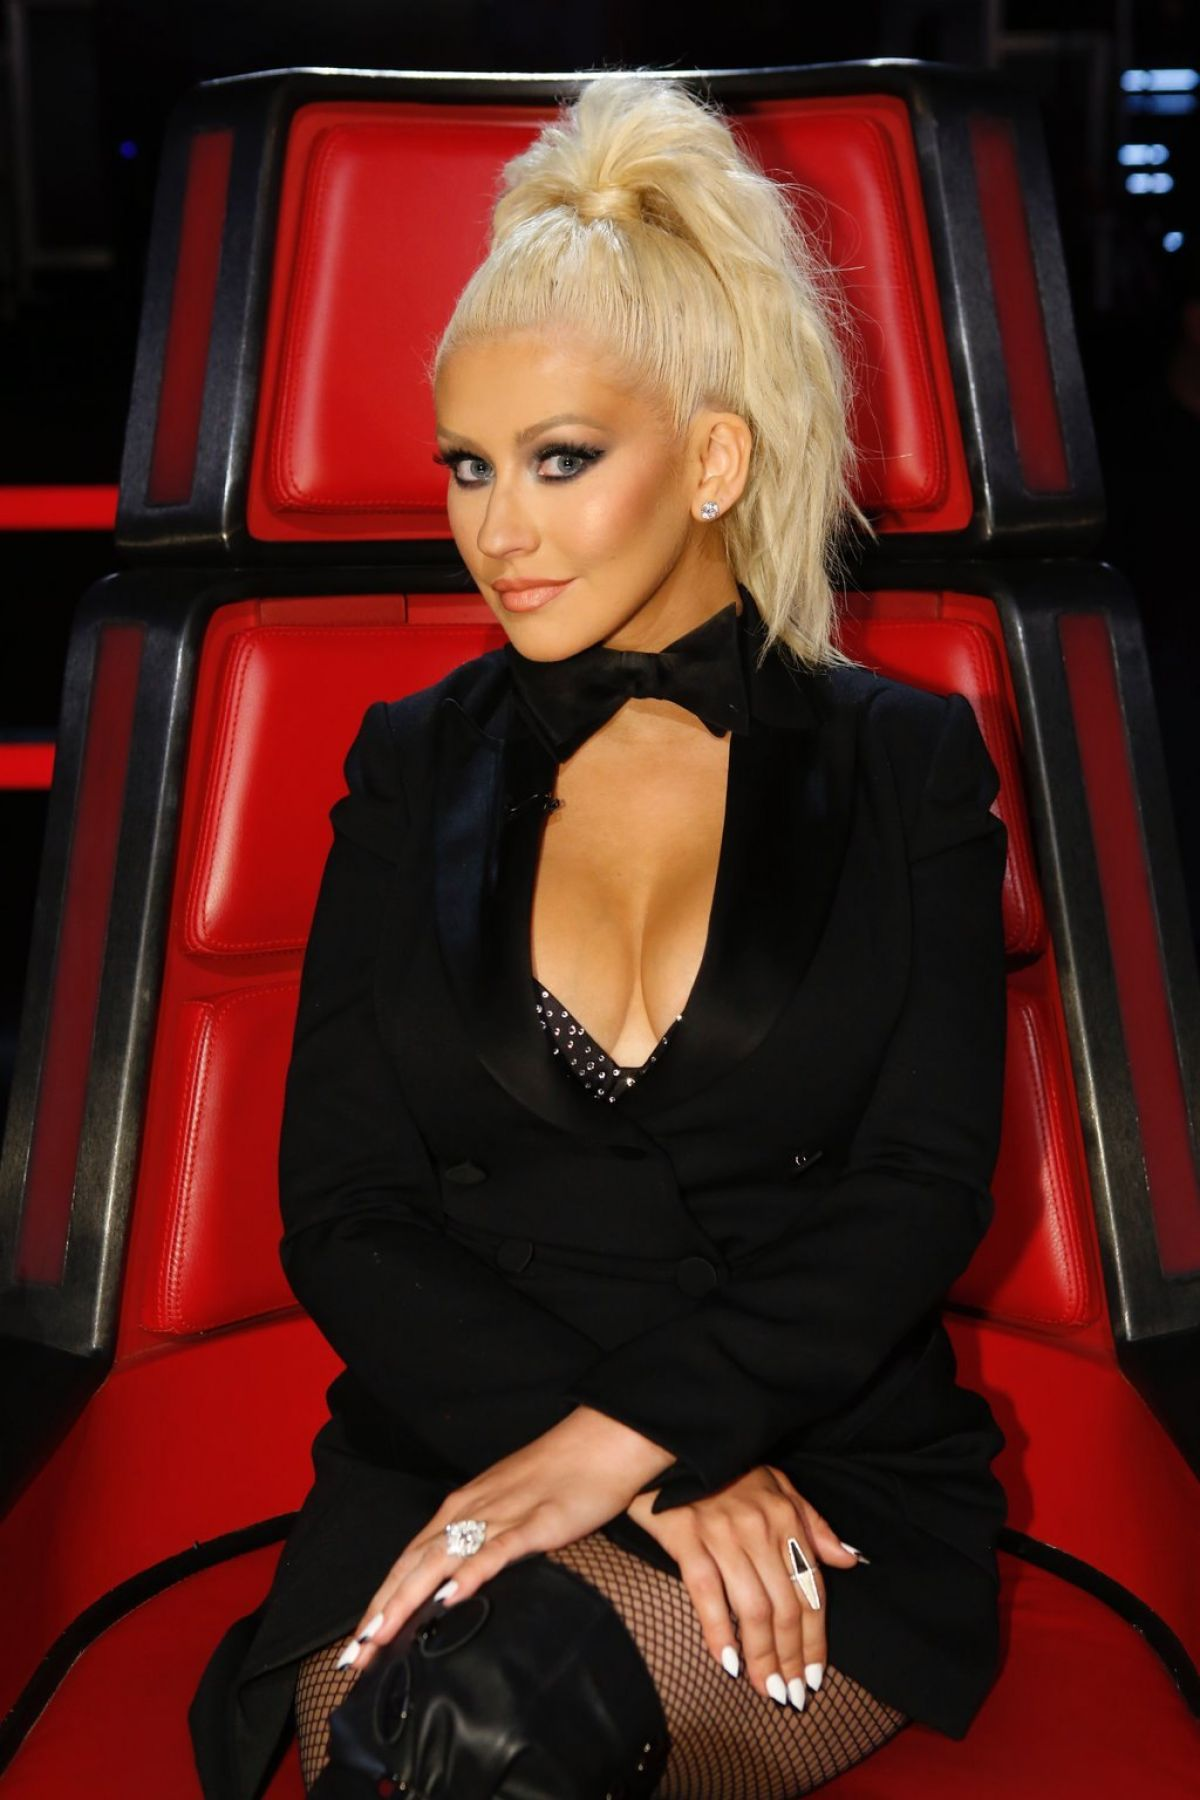 christina-aguilera-the-voice-season-10-p